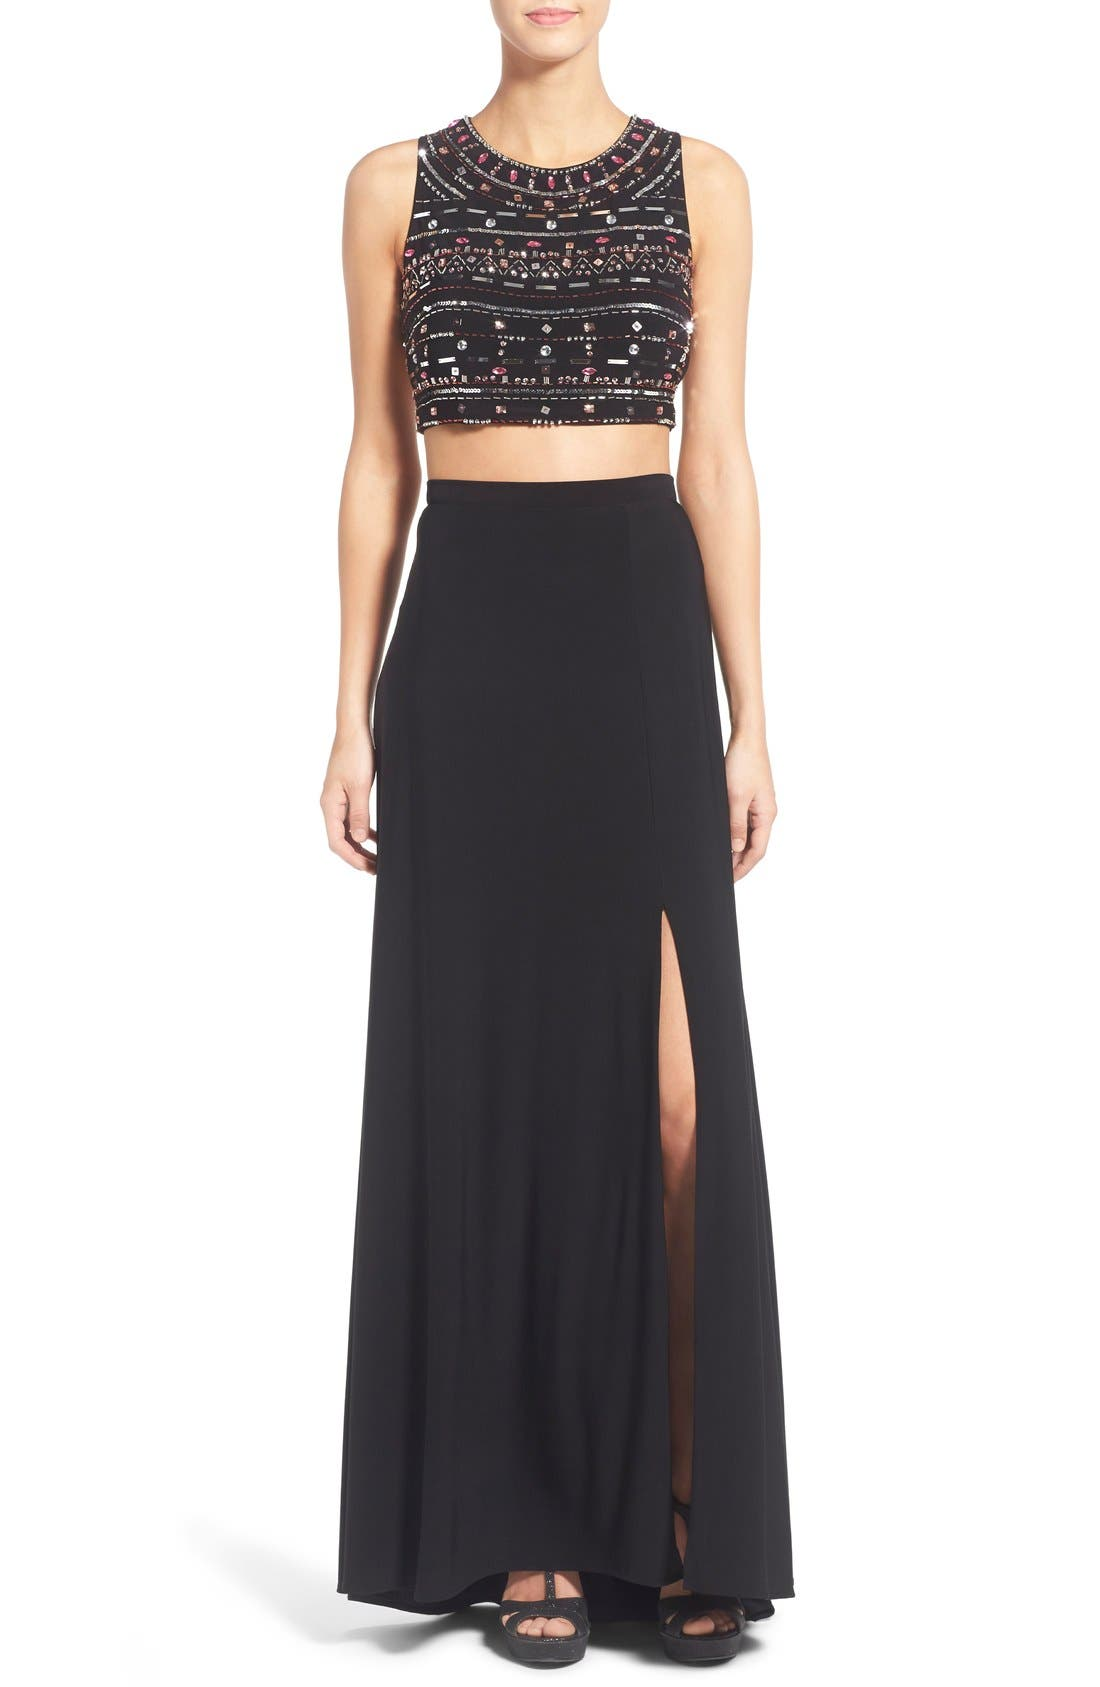 Alternate Image 1 Selected - Morgan & Co. Embellished Two-Piece Gown